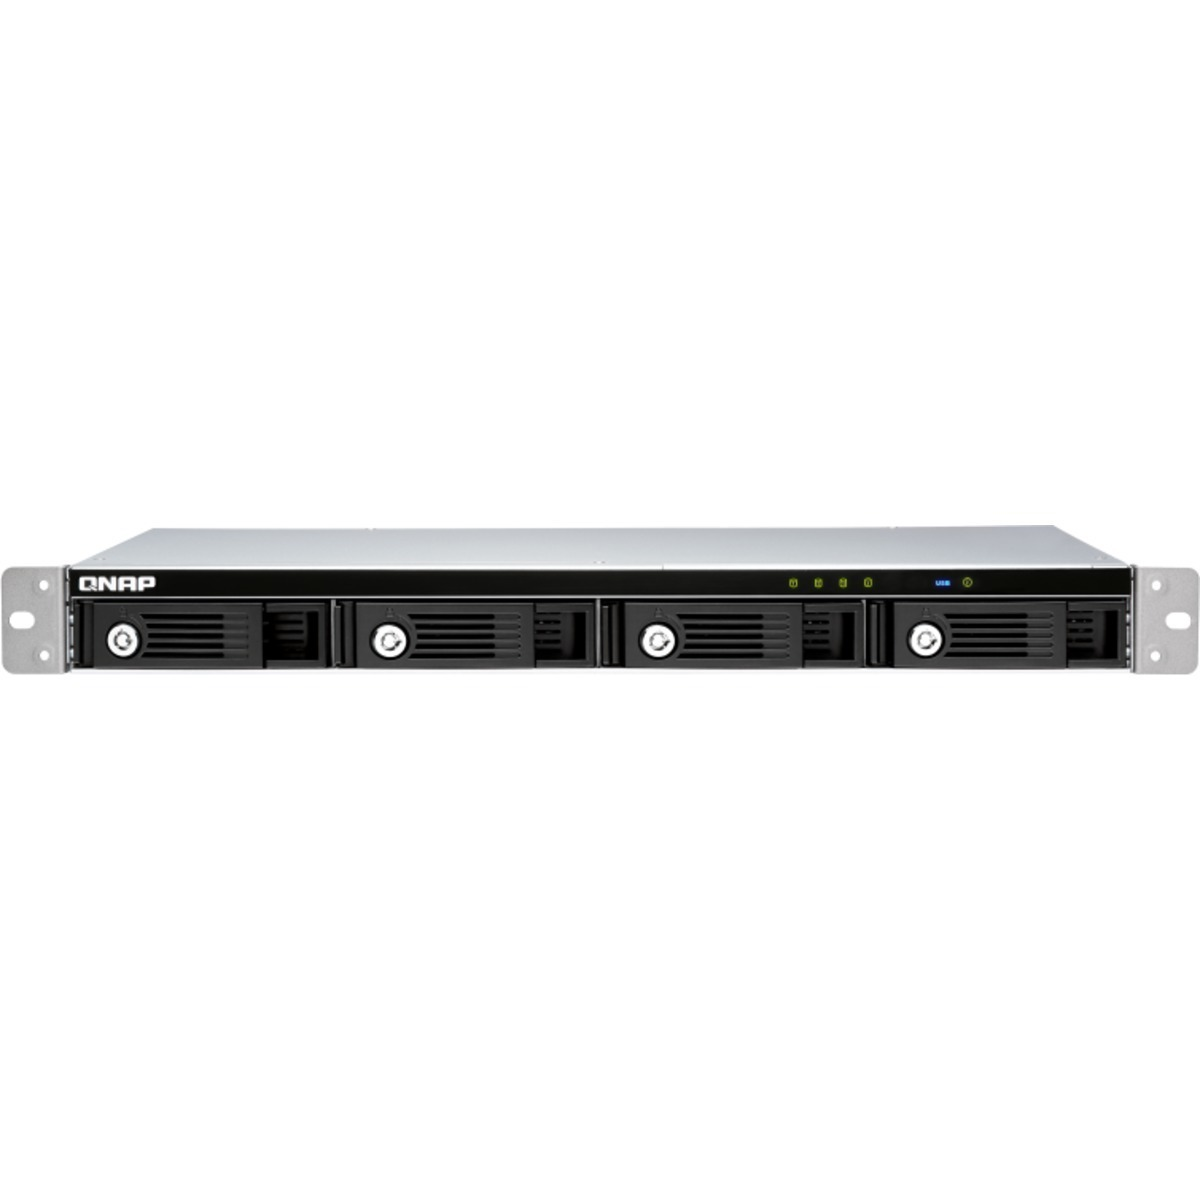 buy $2143 QNAP TR-004U External Expansion Drive 40tb RackMount Expansion Enclosure 4x10000gb Seagate BarraCuda Pro ST10000DM0004 3.5 7200rpm SATA 6Gb/s HDD CONSUMER Class Drives Installed - Burn-In Tested - nas headquarters buy network attached storage server device das new raid-5 free shipping usa holiday new year clearance sale TR-004U External Expansion Drive